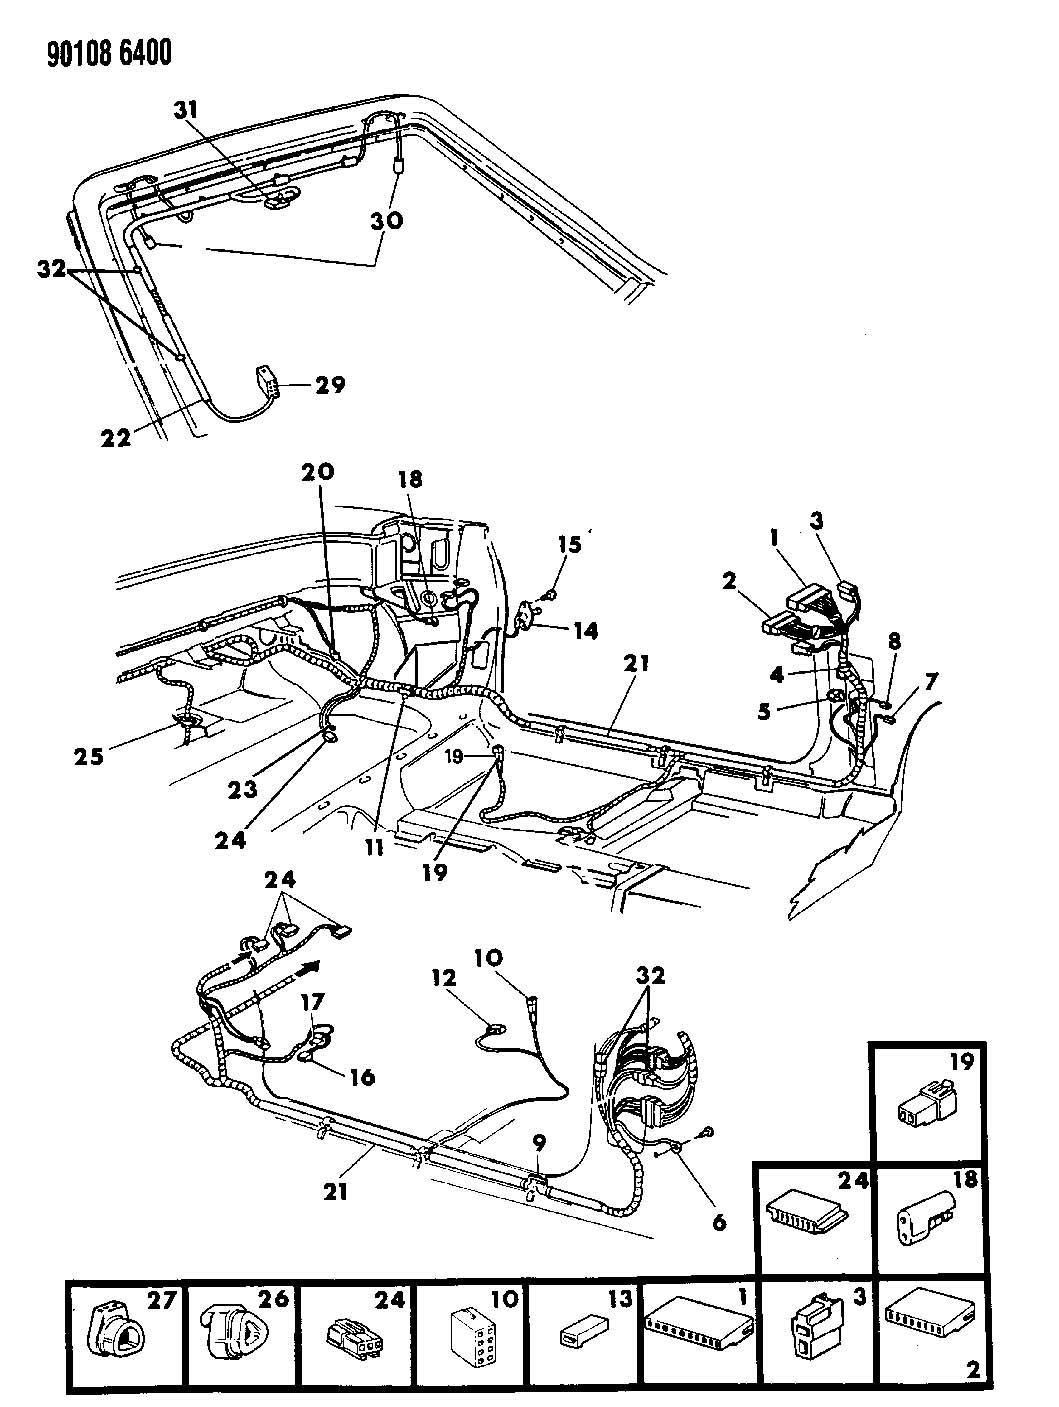 P 0900c15280055cf5 additionally 72 Chevy Starter Wiring Diagram Truckforum Org Forums as well How To Disarm The Alarm On A 1990 Lamborghini Countach also T14521255 Flasher located 2005 kia sprecta also P 0900c15280055cf5. on buick skylark t type